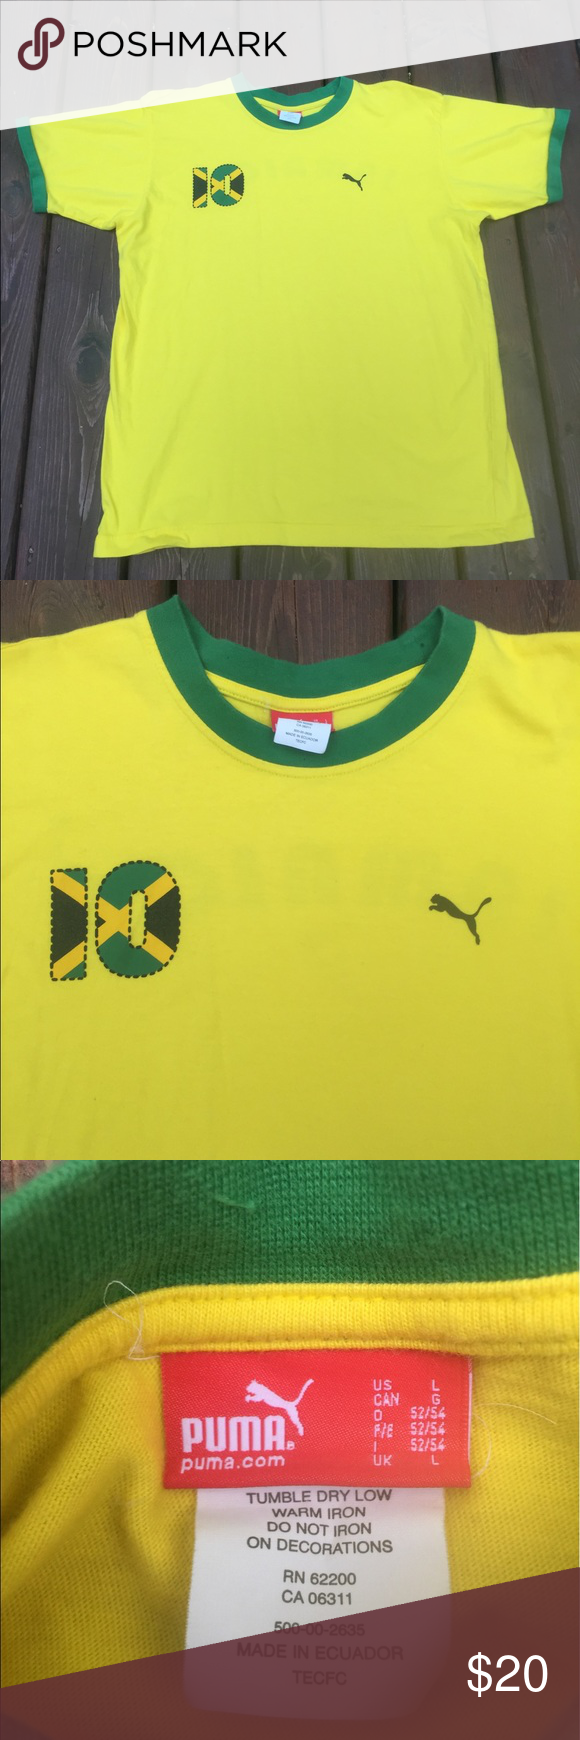 df7684168b6 Men s Large Puma Jamaica shirt size Large